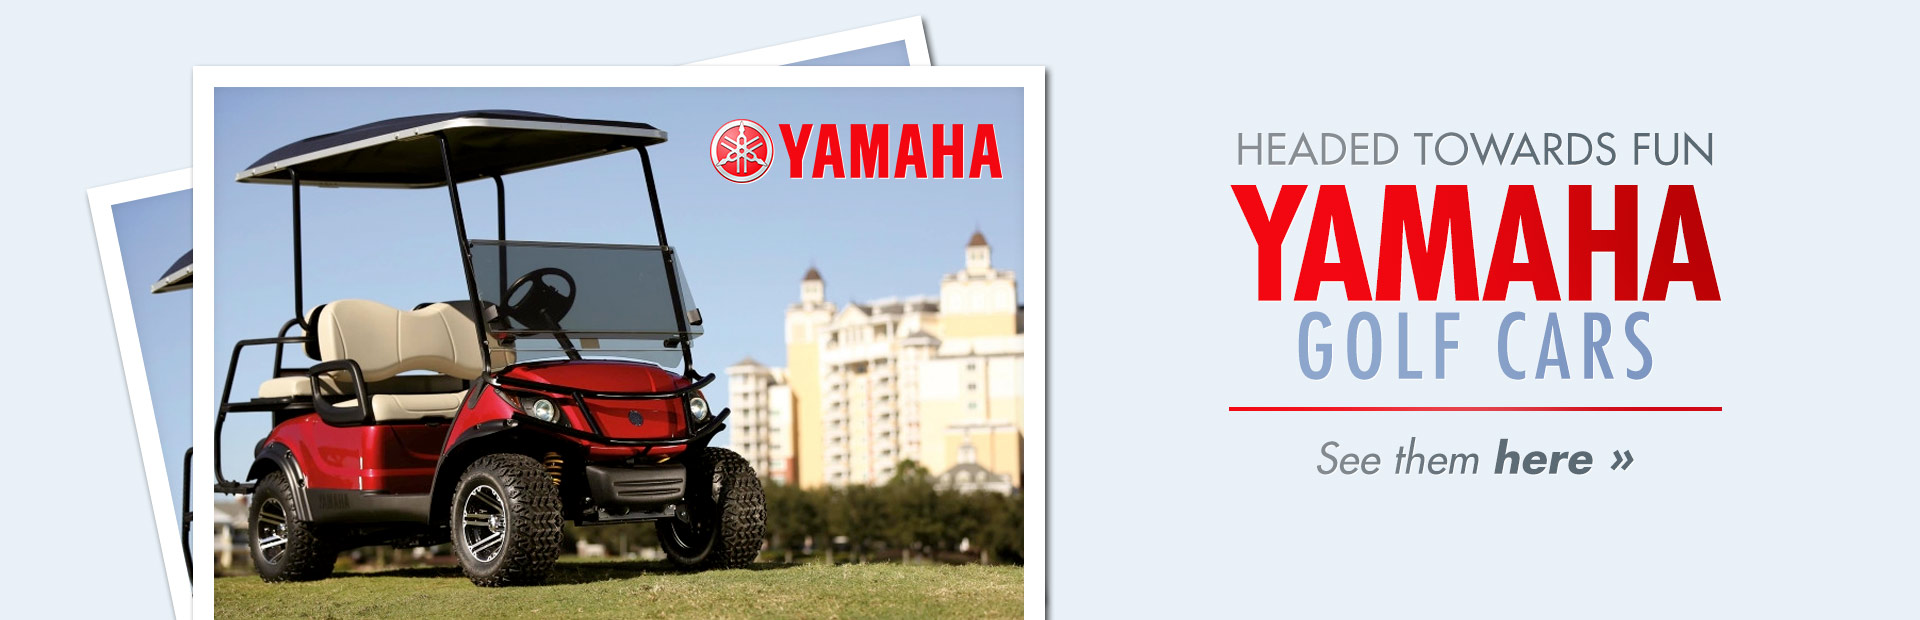 Yamaha Golf Cars: Click here to view the models.